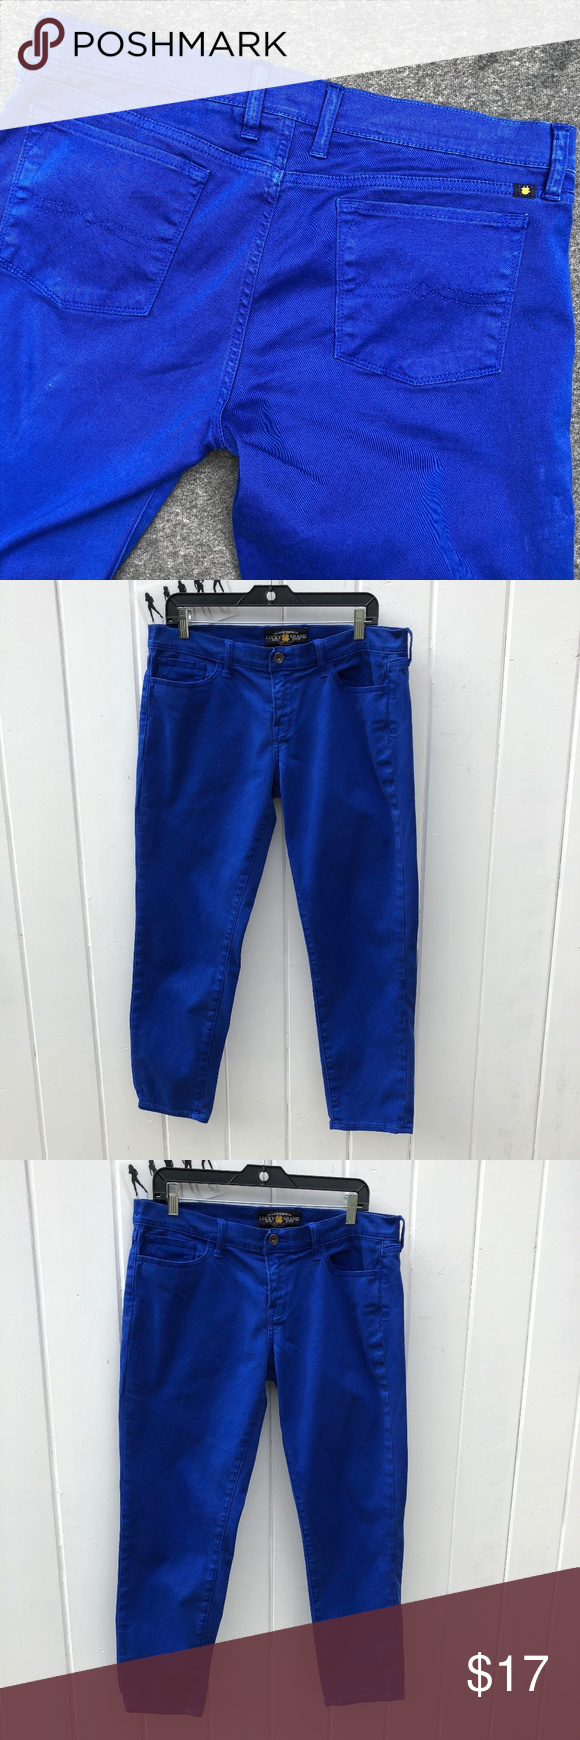 Lucky Brand Charlie Capri Blue Mid Rise Pants Tag Size 14